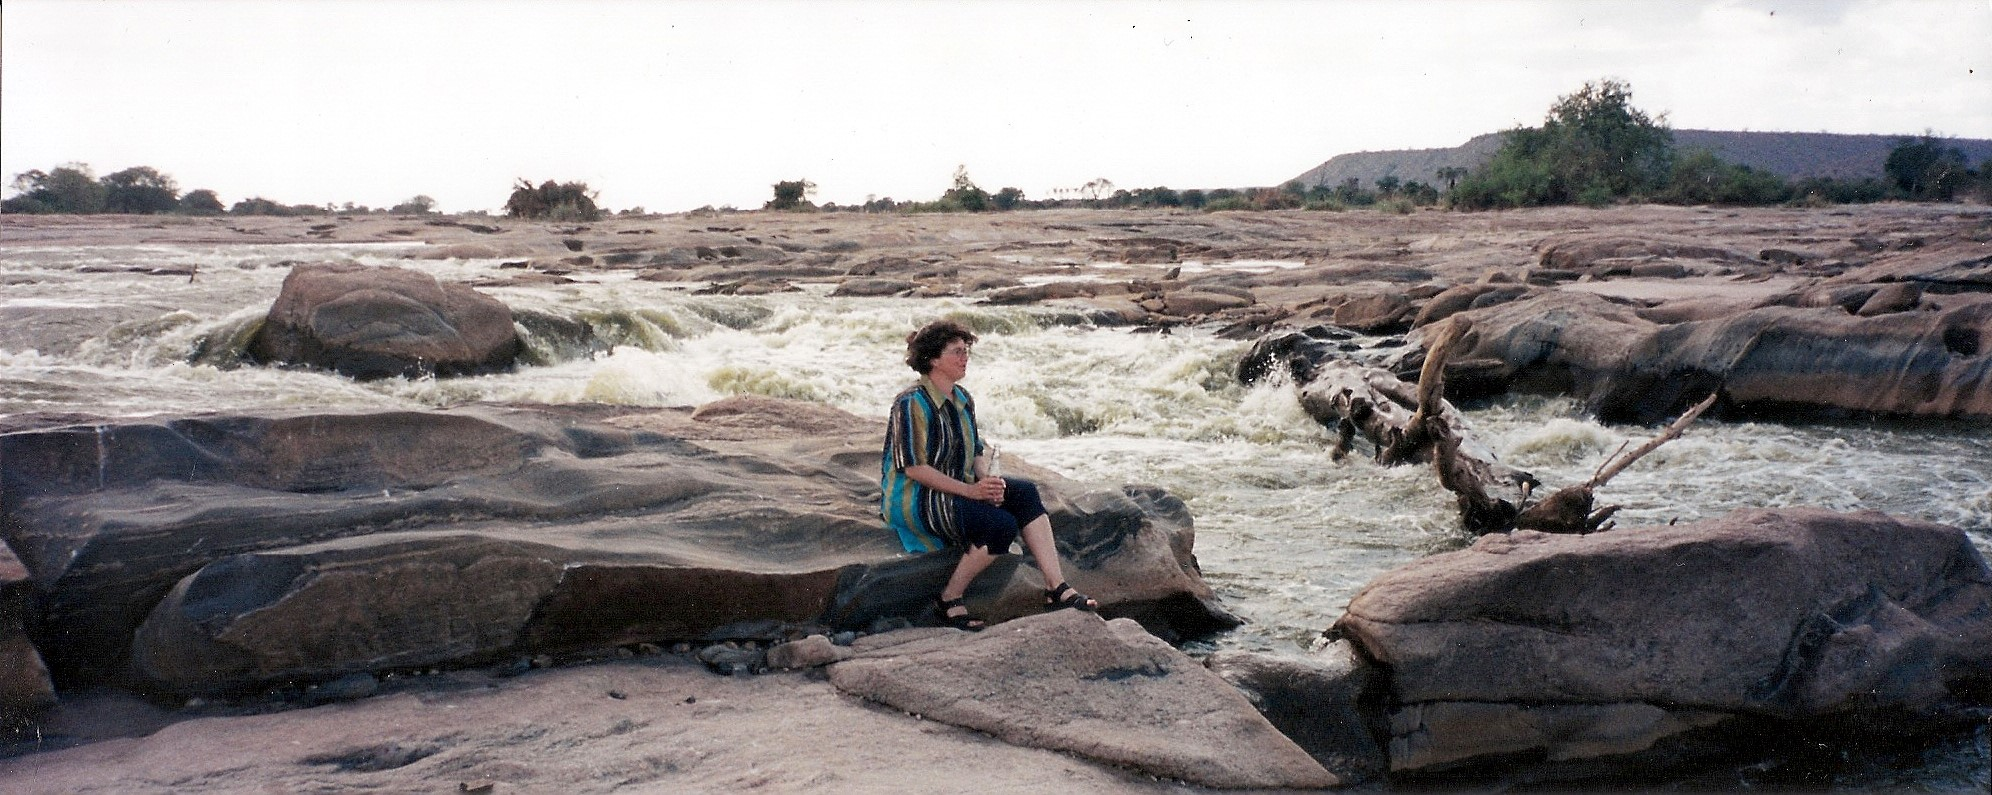 The Galana River in East Tsavo